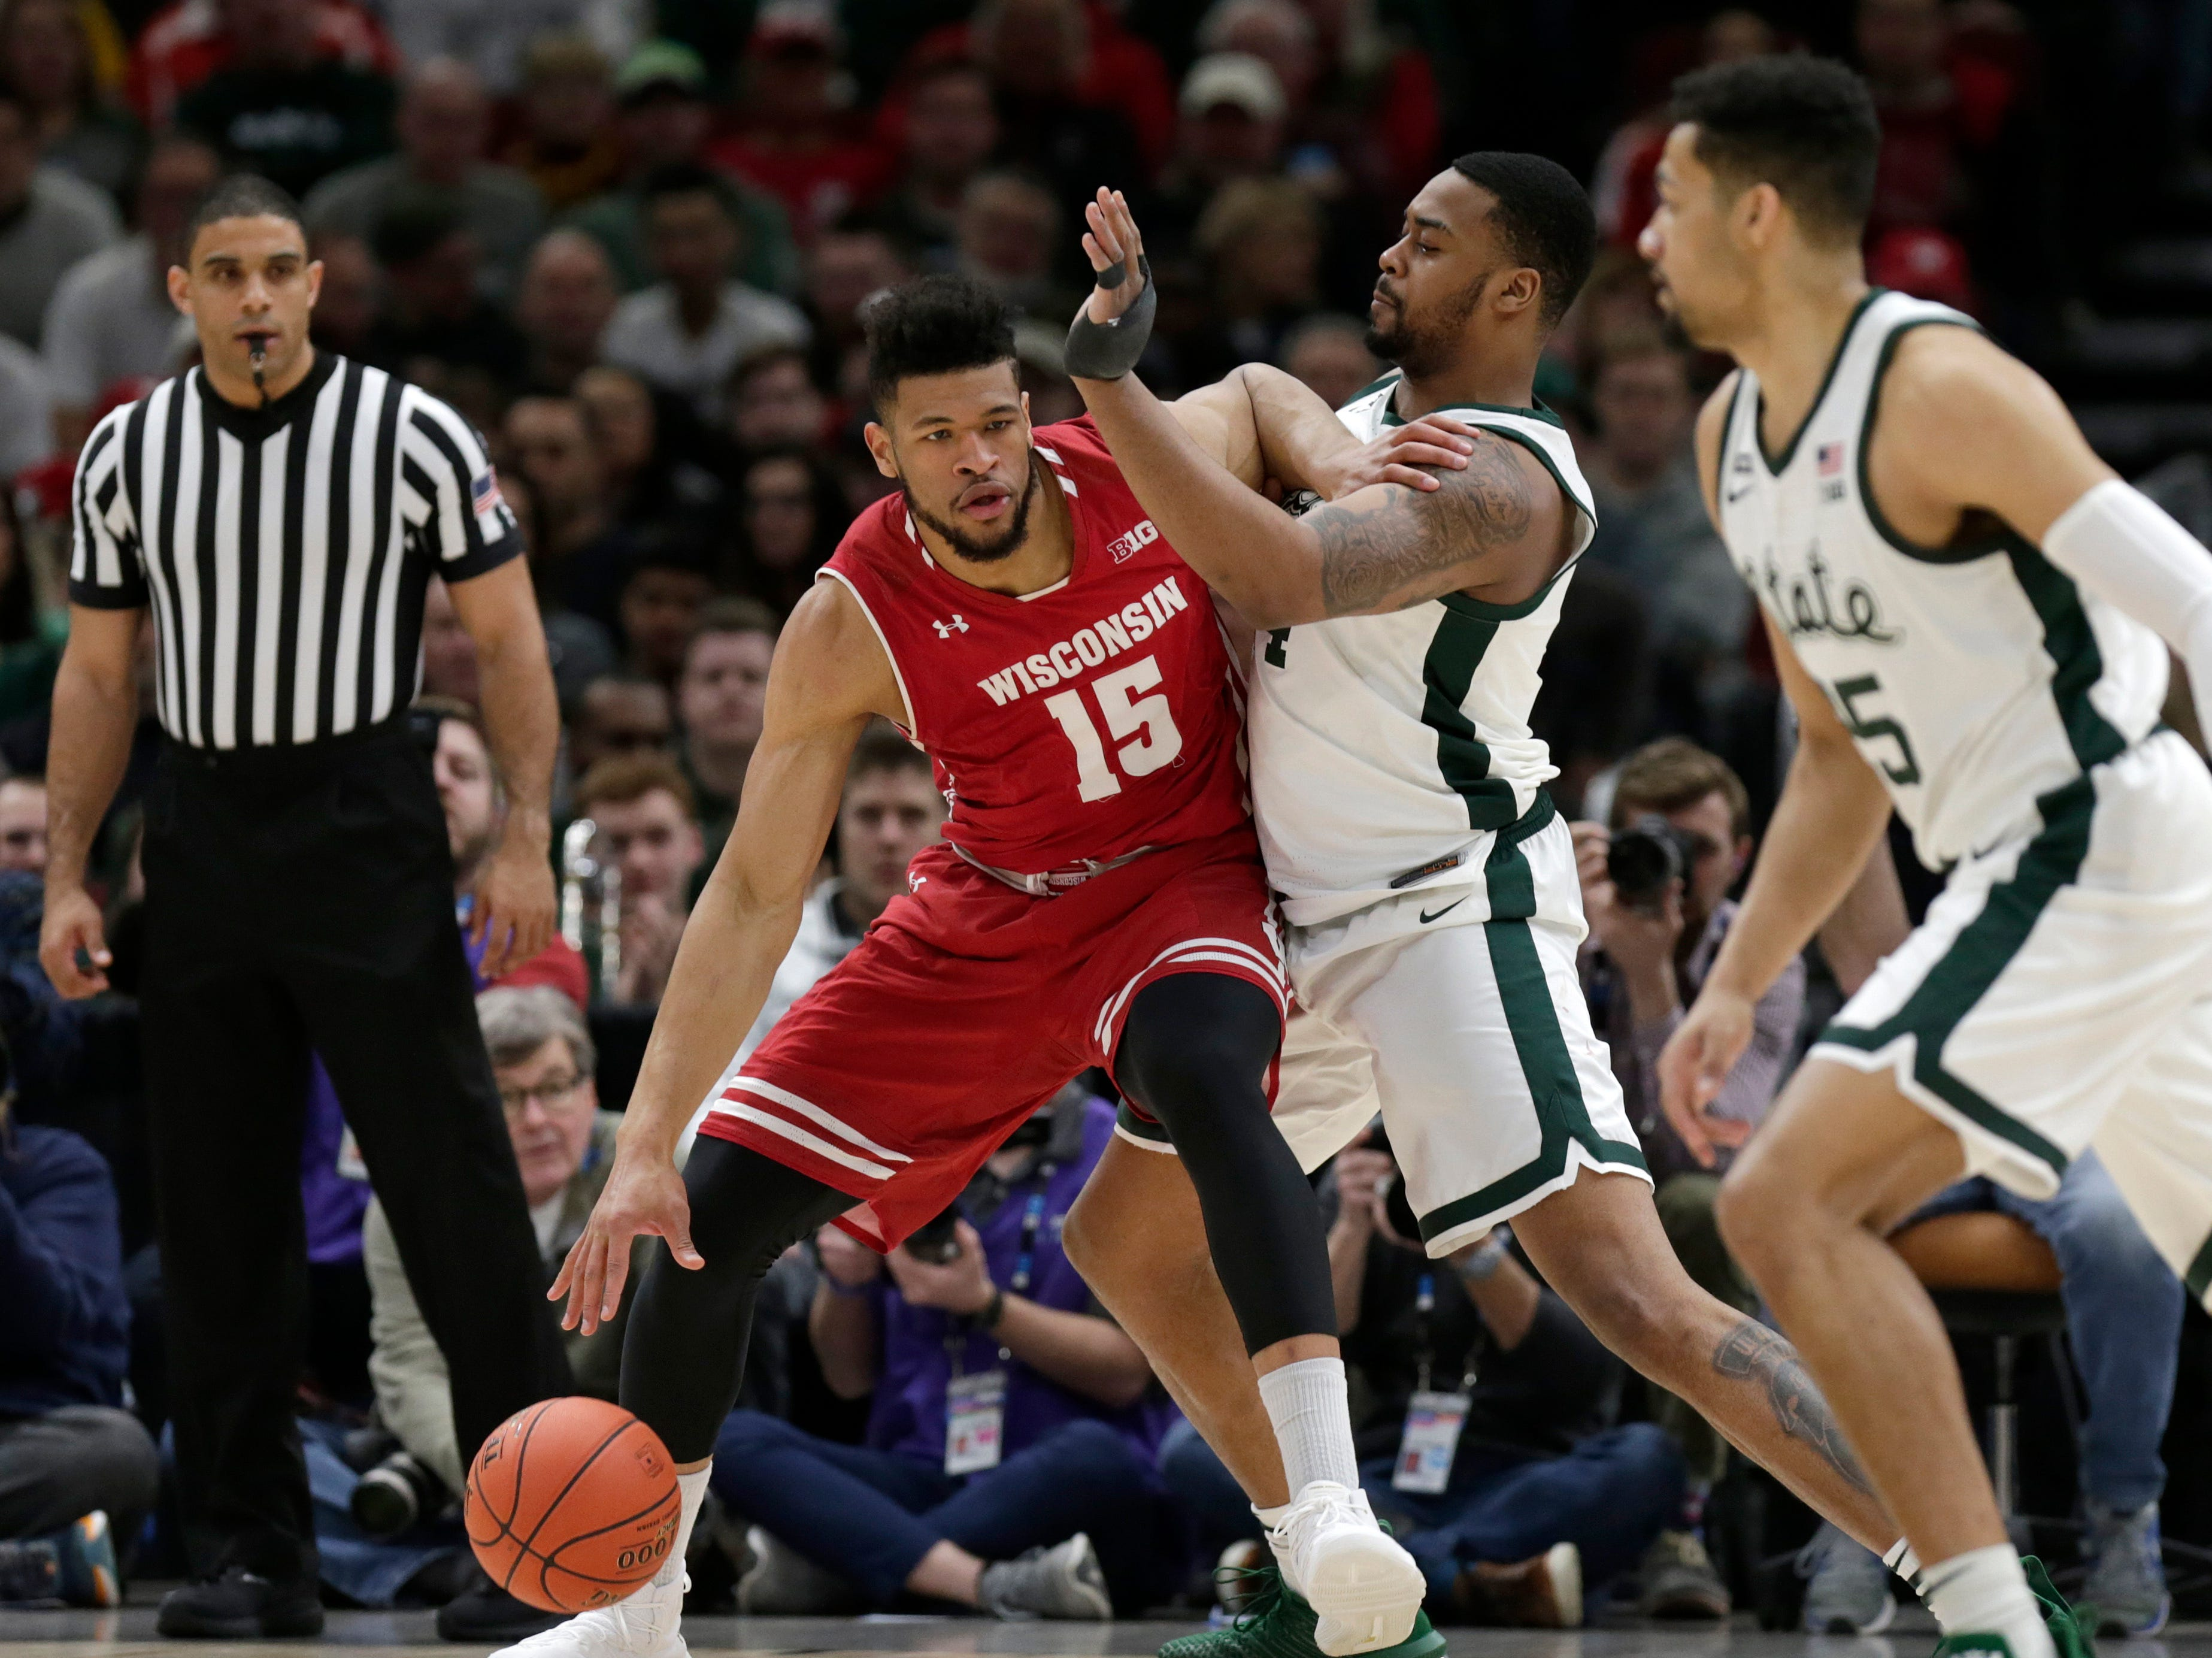 Wisconsin's Charles Thomas IV (15) derives against Michigan State's Nick Ward during the first half of an NCAA college basketball game in the semifinals of the Big Ten Conference tournament, Saturday, March 16, 2019, in Chicago.